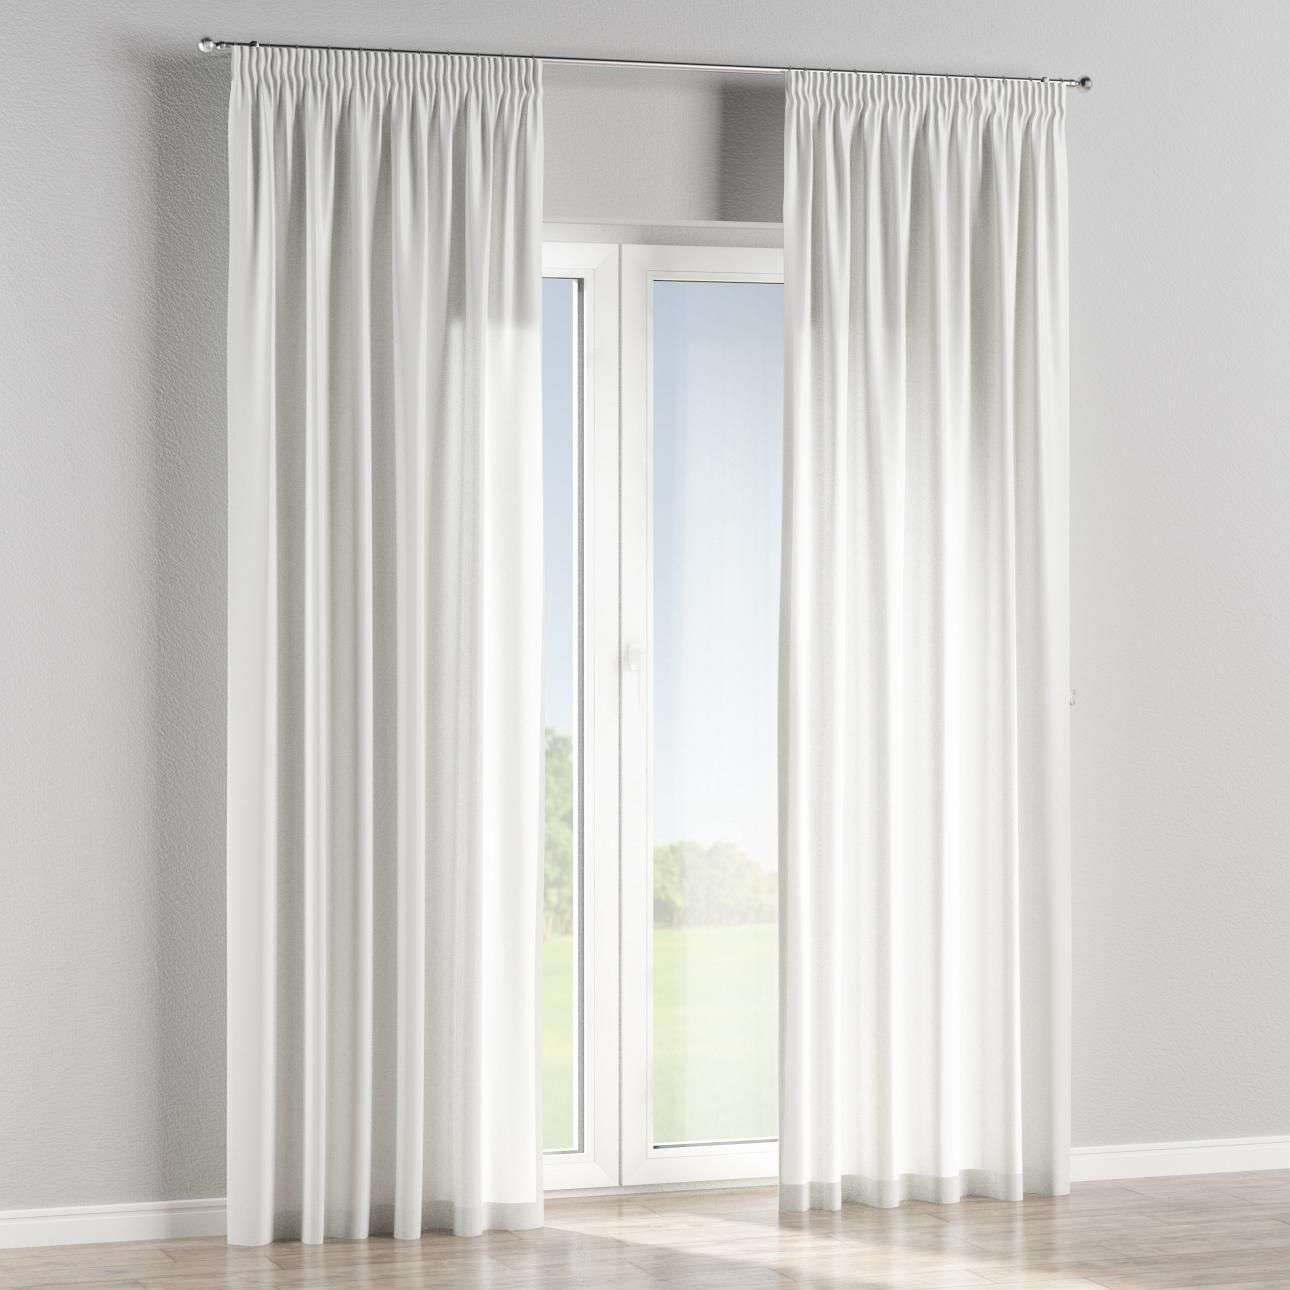 Pencil pleat curtains in collection Rustica, fabric: 138-11